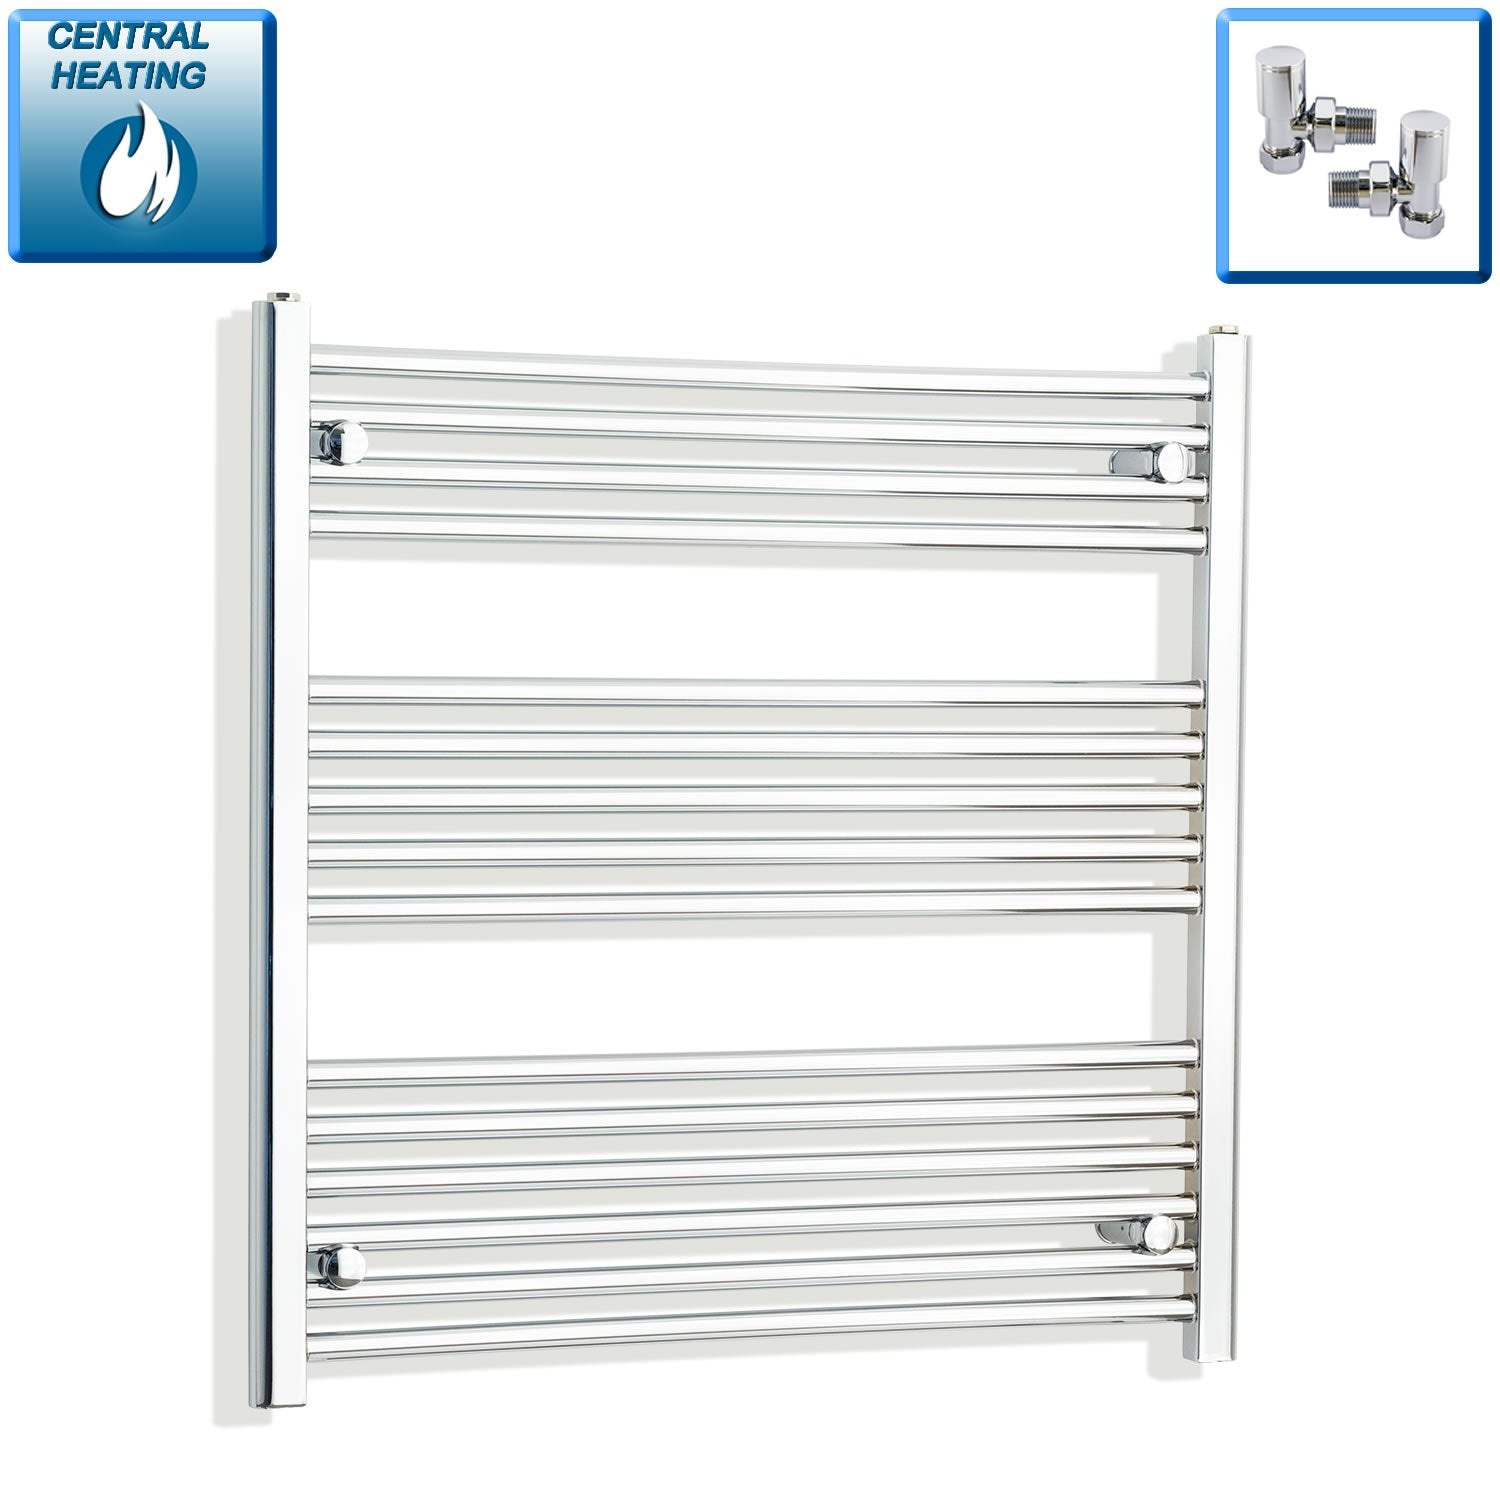 900mm Wide 800mm High Flat Chrome Heated Towel Rail Radiator HTR,With Angled Valve